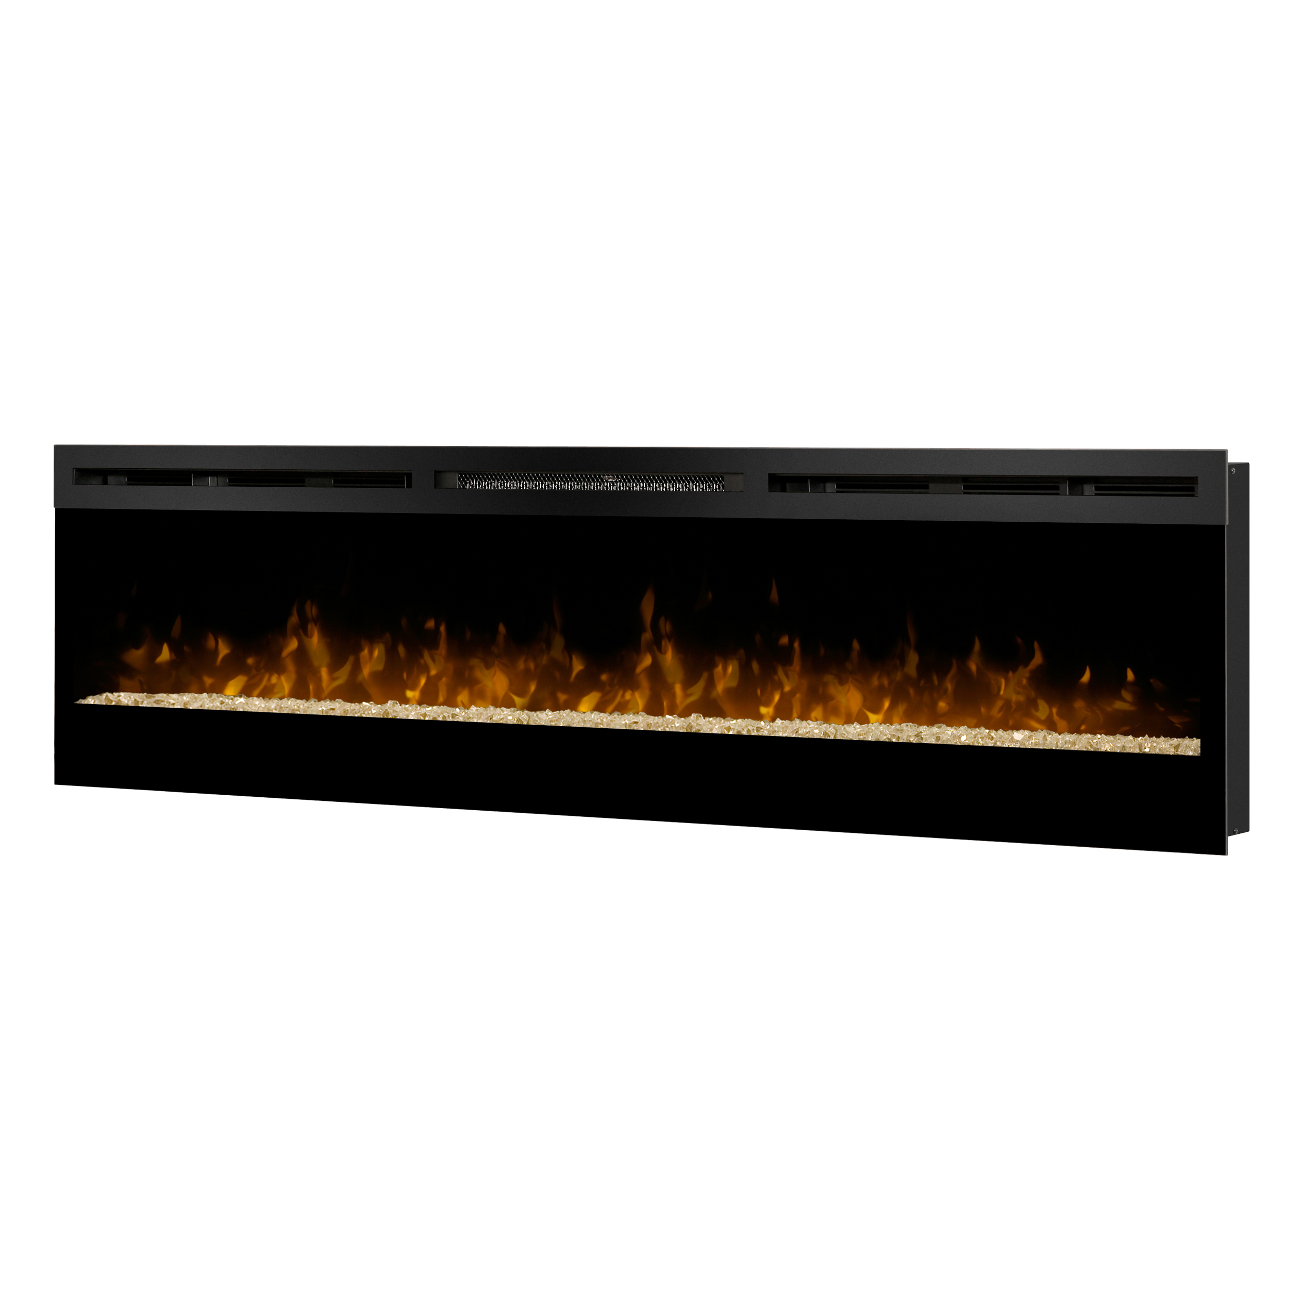 Dimplex 74 Inch Galveston Electric Fireplace Insert Wall Mount BLF74